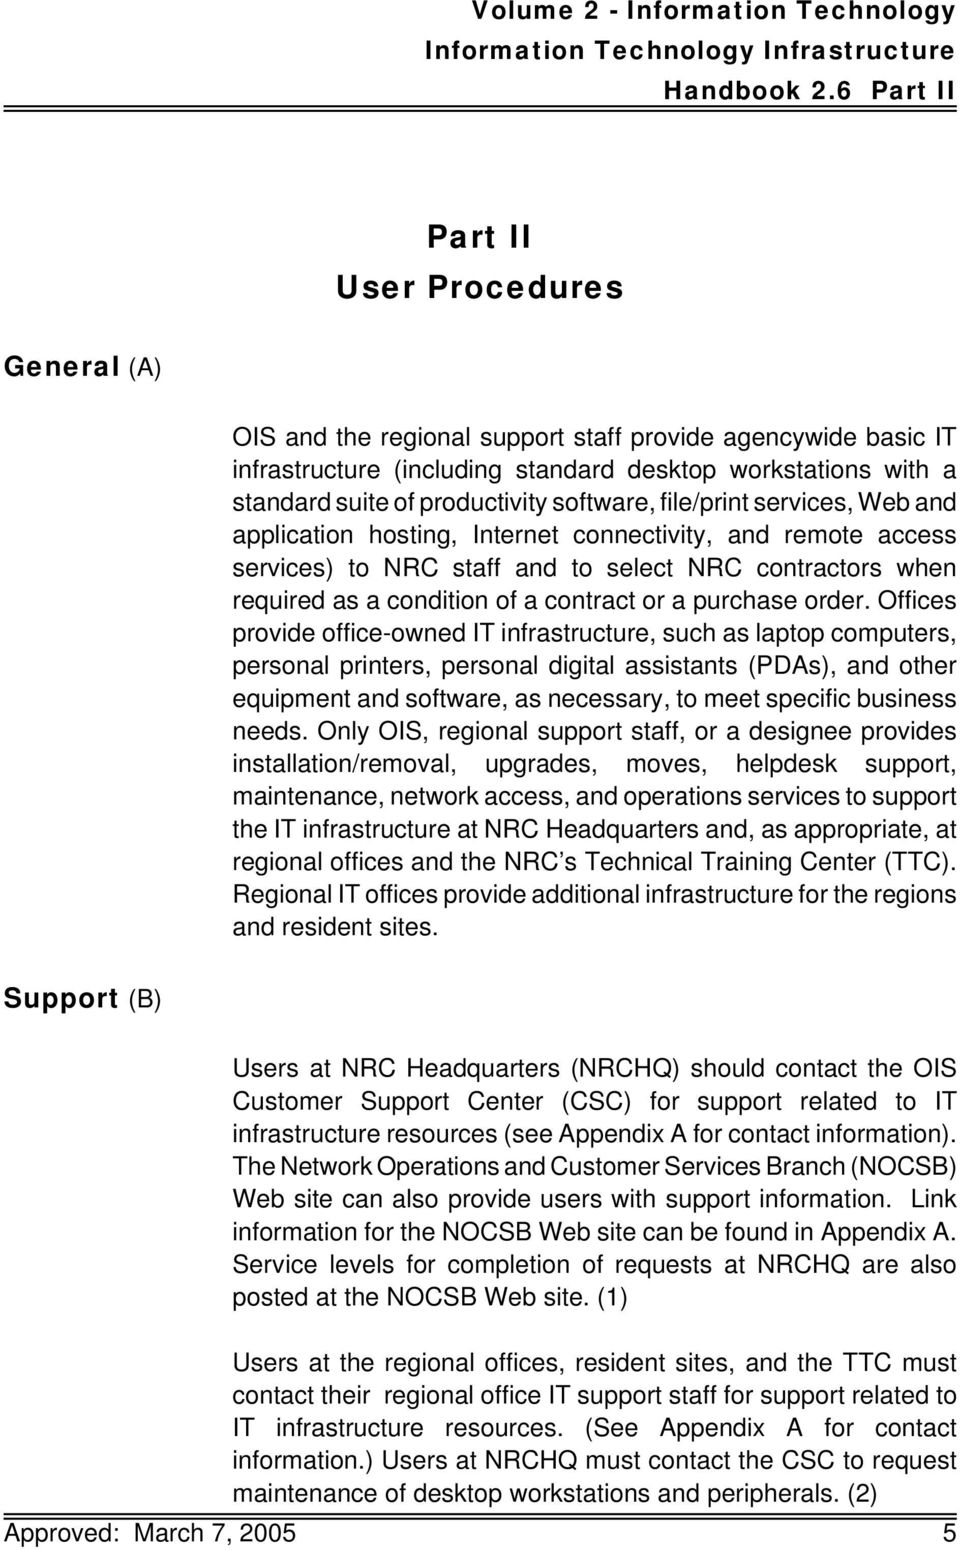 productivity software, file/print services, Web and application hosting, Internet connectivity, and remote access services) to NRC staff and to select NRC contractors when required as a condition of